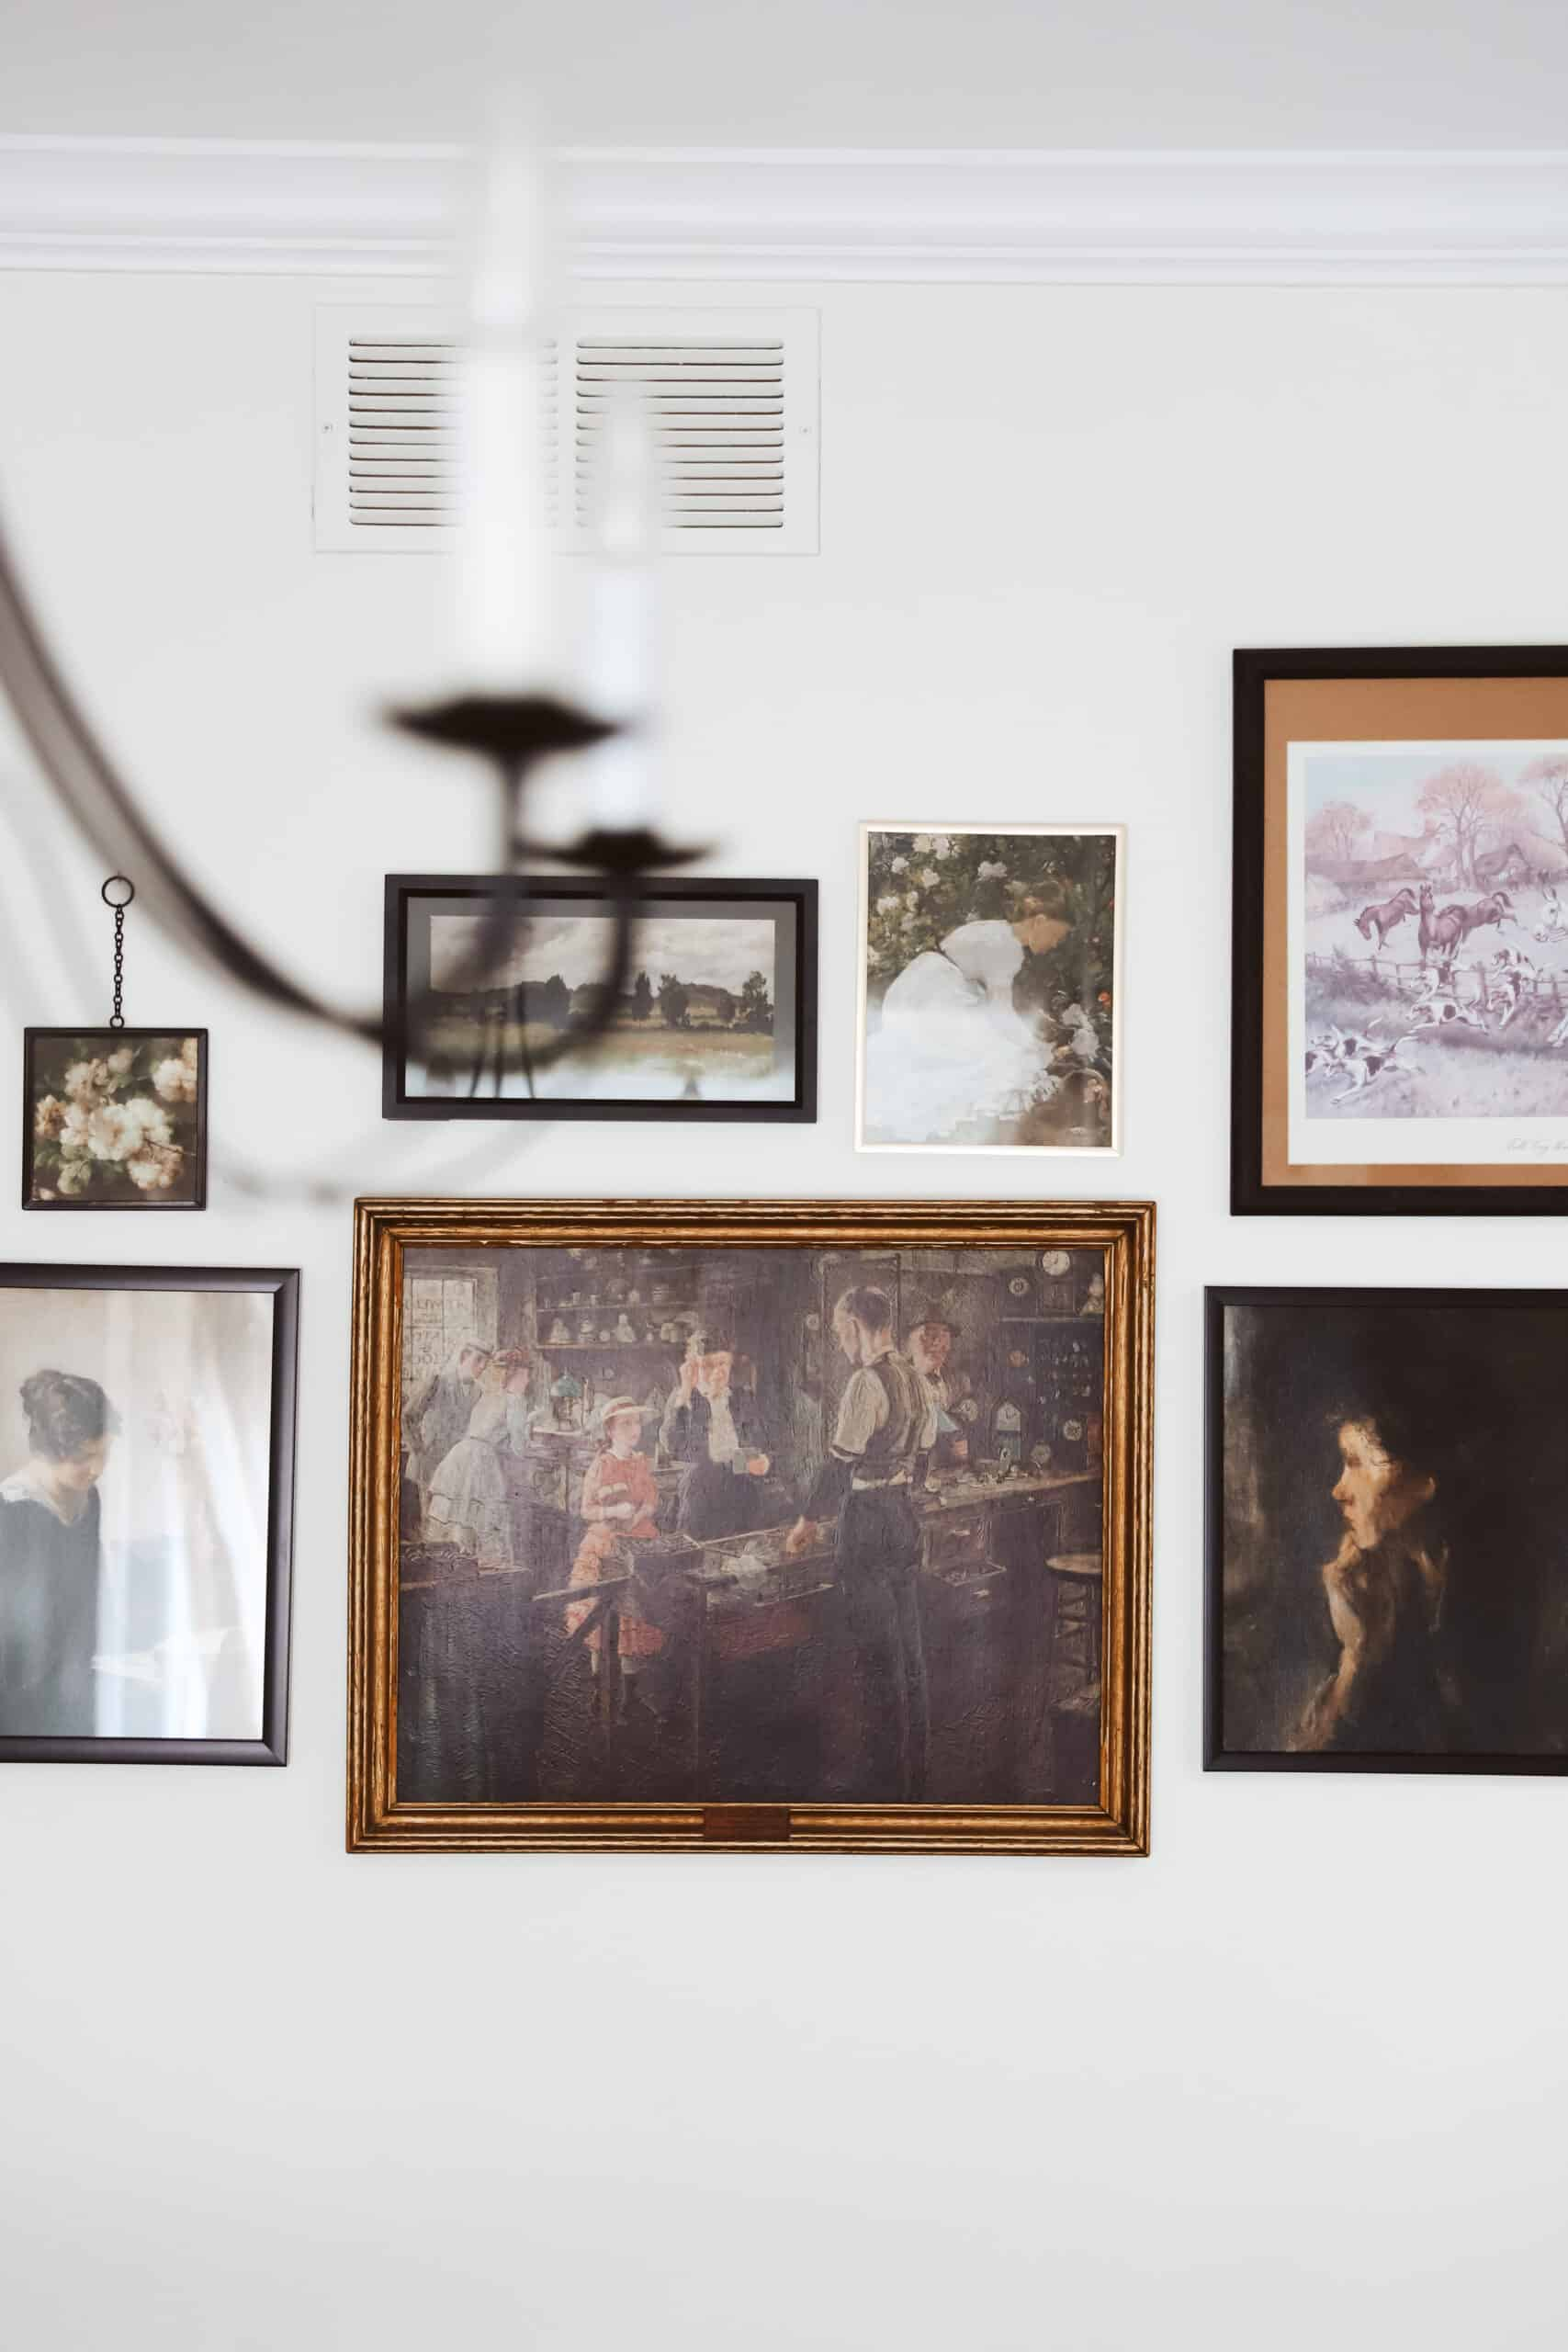 How to Make a Gallery Wall with Vintage Art